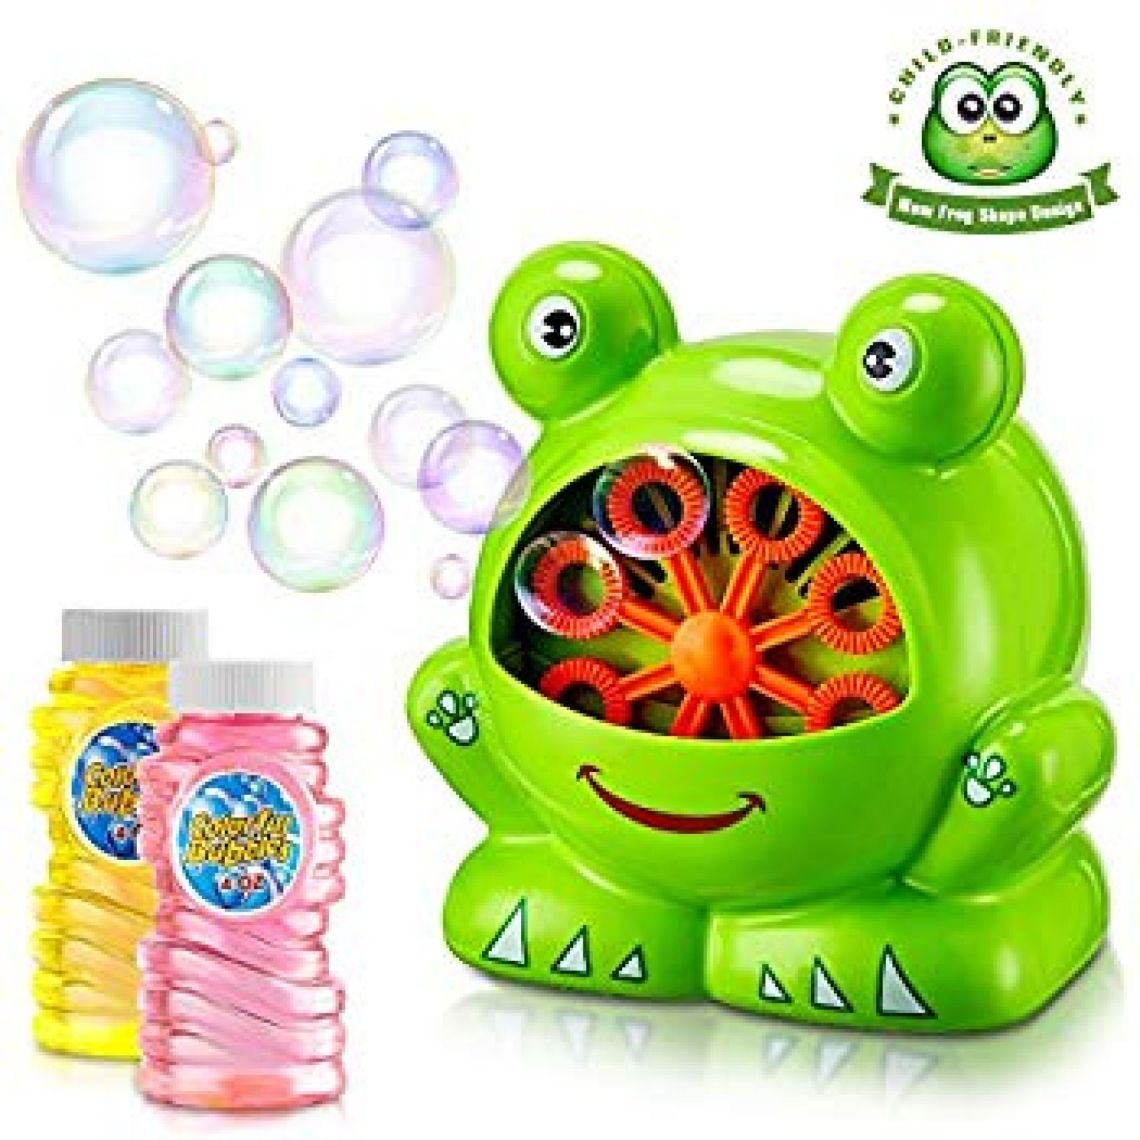 Amazon.com: TOSCiDO Bubble Machine Automatic Bubble Maker Durable Portable Bubble Blower for Kid, Over 500 Colorful Bubbles Per Minute, Including Bubble Solution Easy to Use for Picnic, Parties, Wedding: Toys & Games